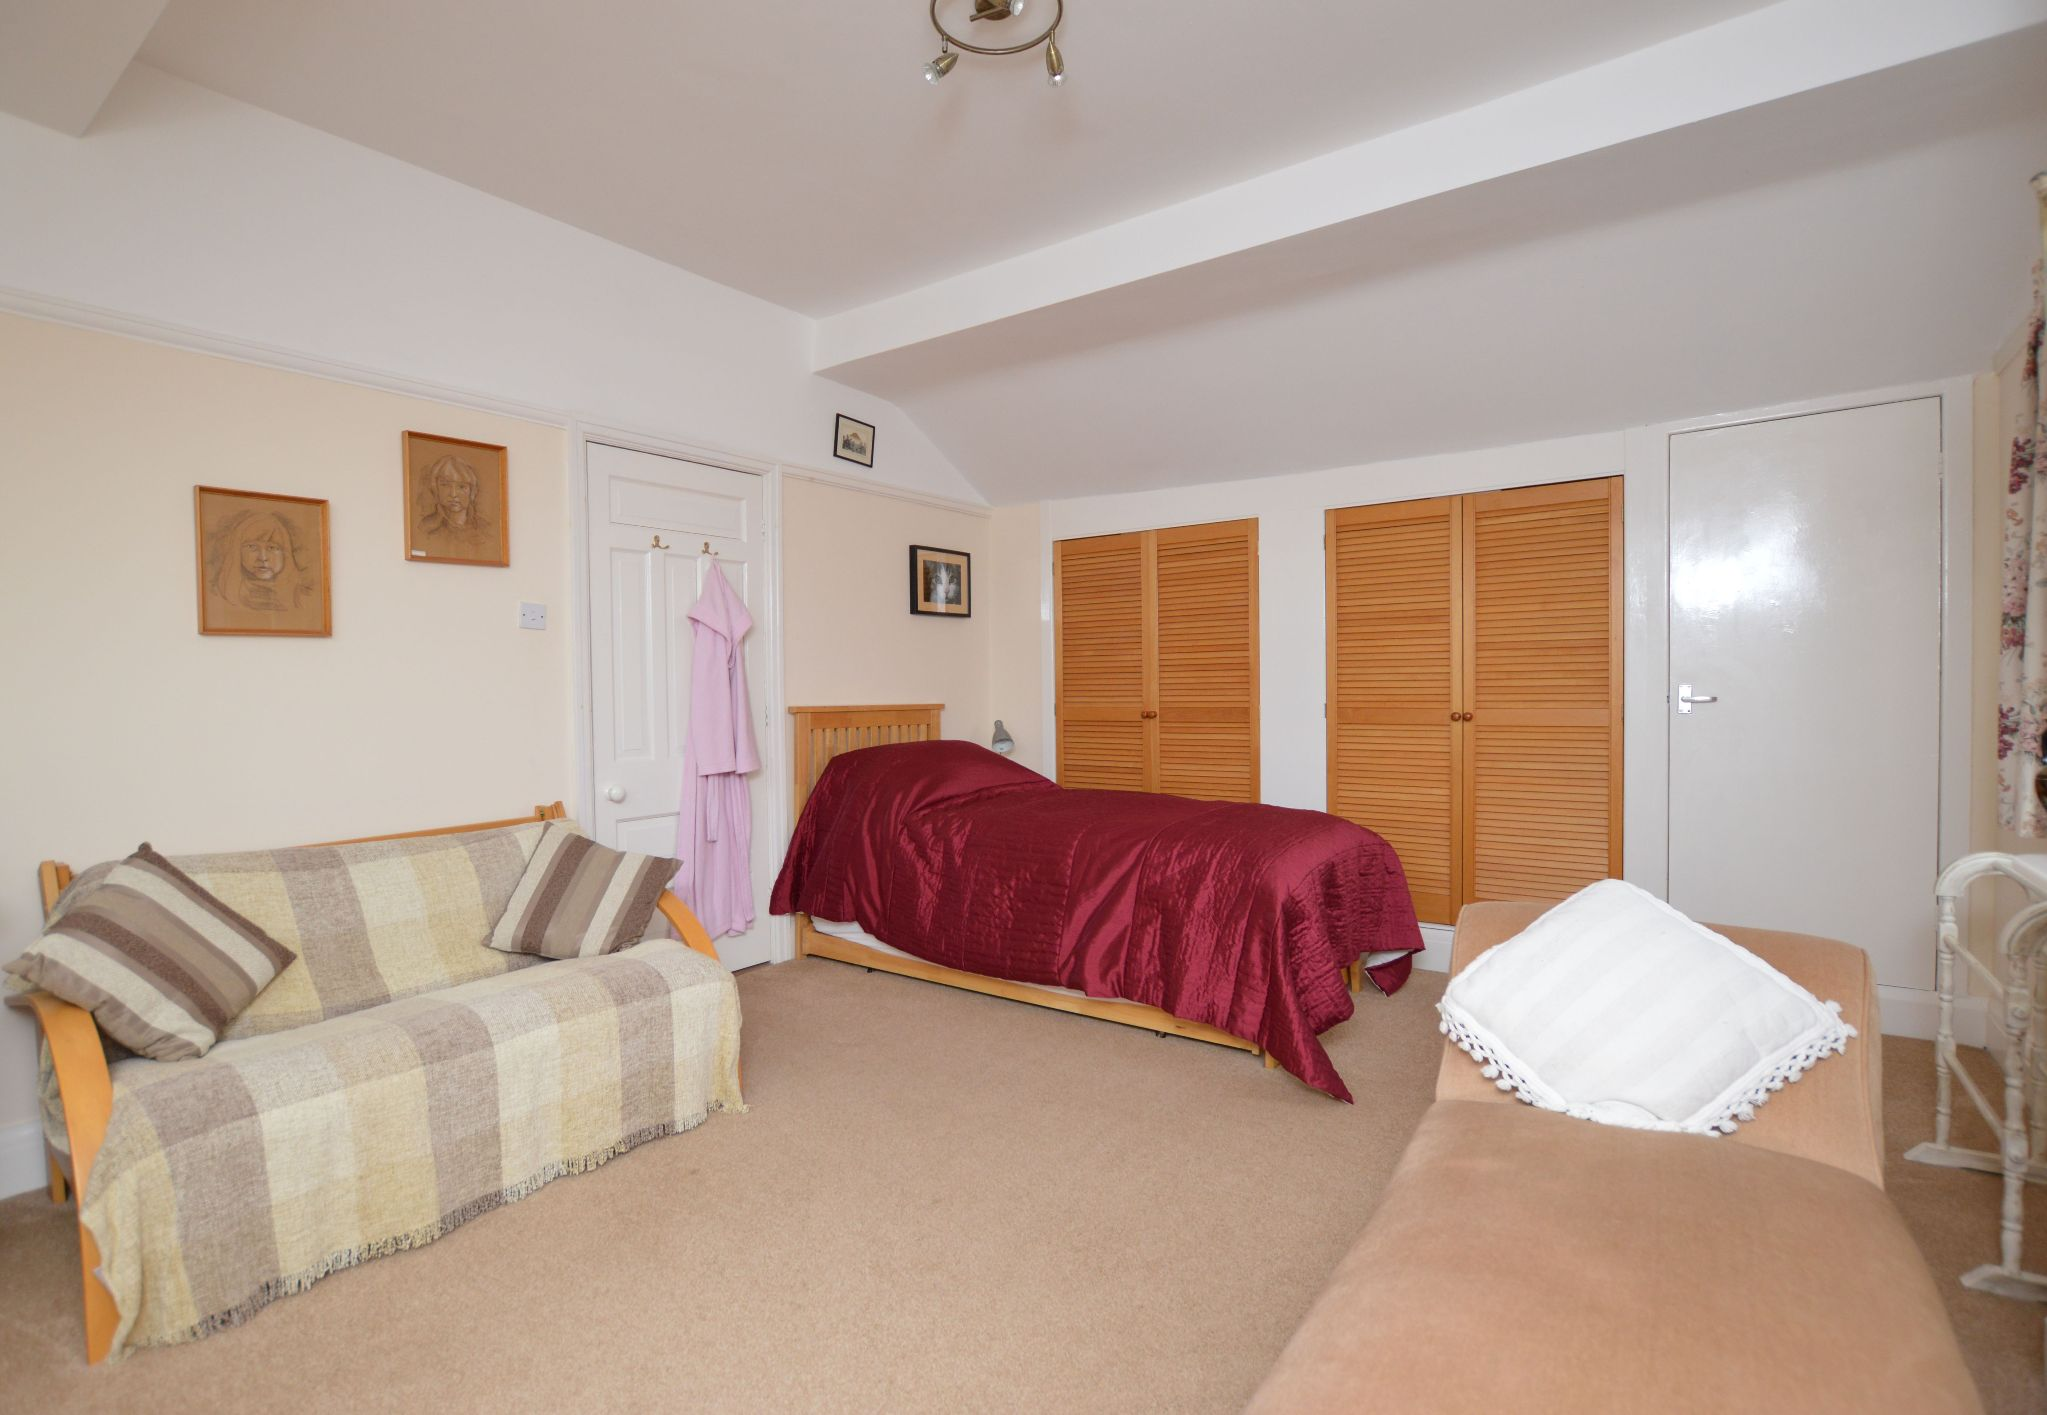 4 bedroom detached bungalow For Sale in Abergele - Bedroom 2 View 3